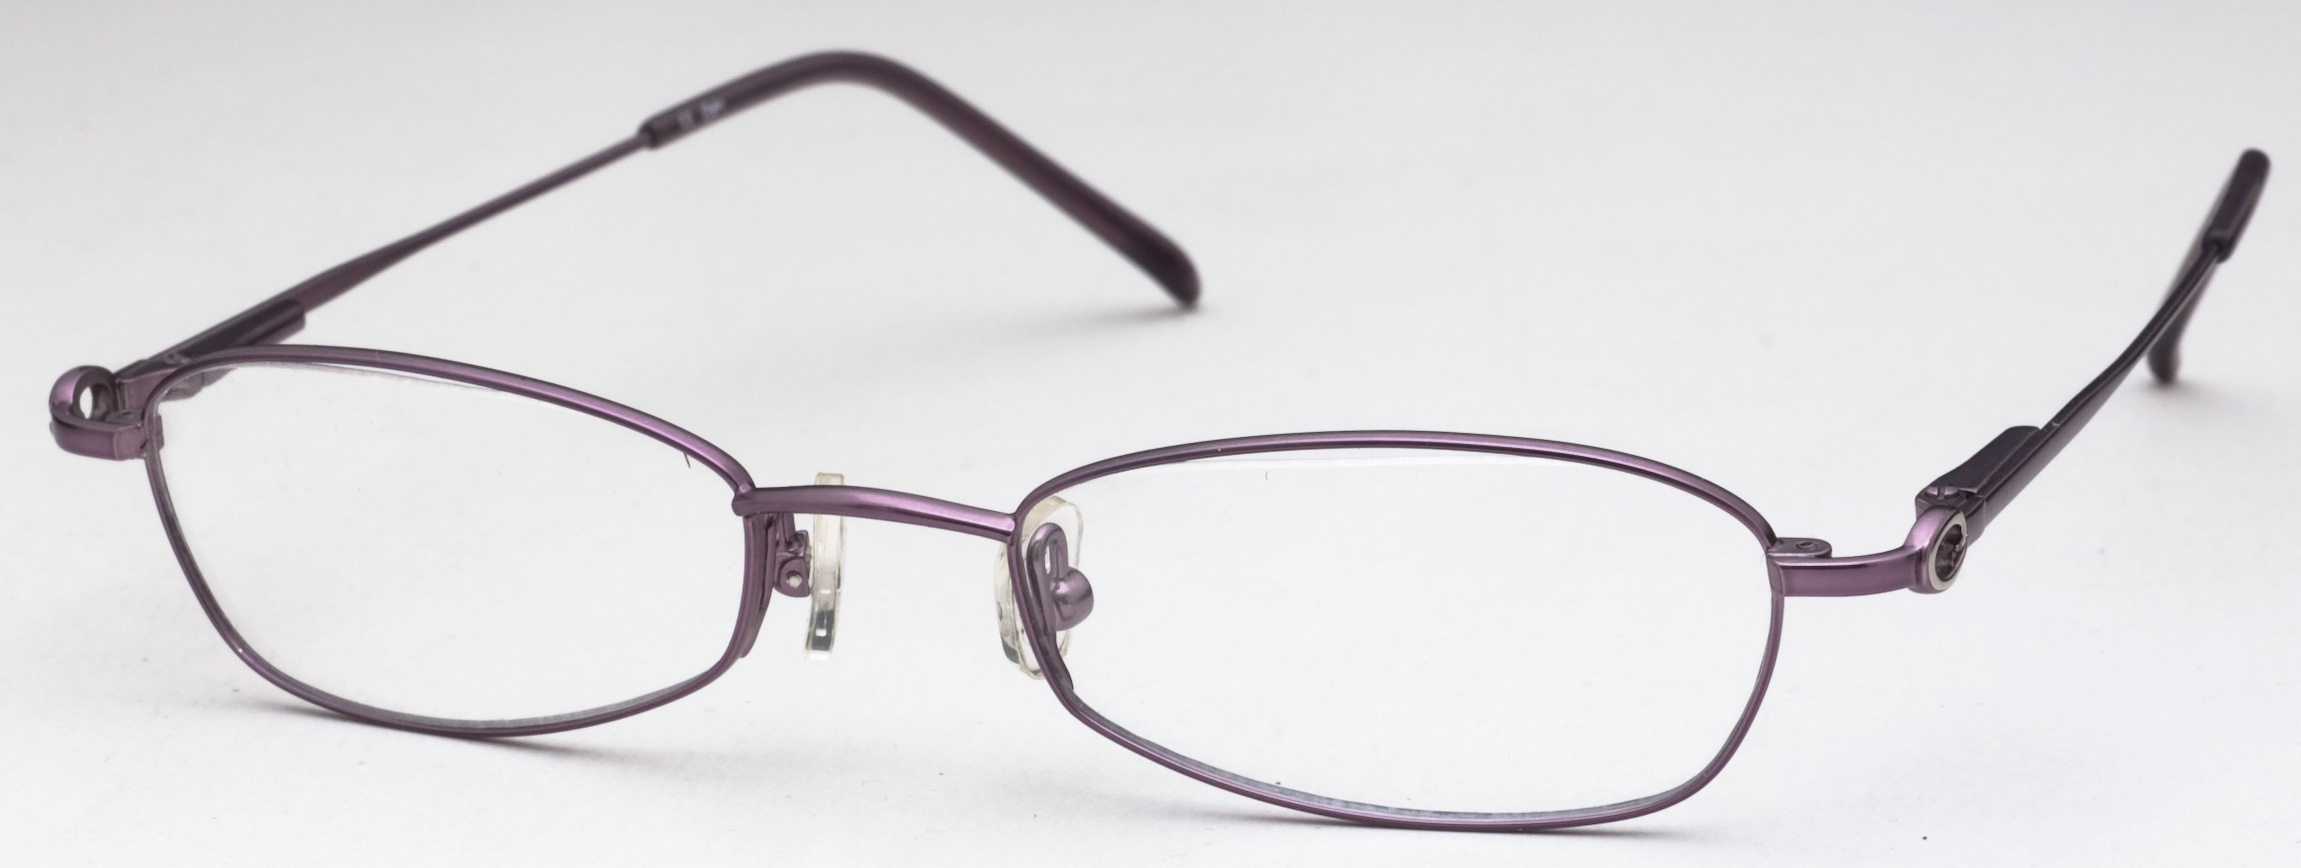 Eyeglasses: Brand Candies Lifetime-Eyecare.com has the most ...